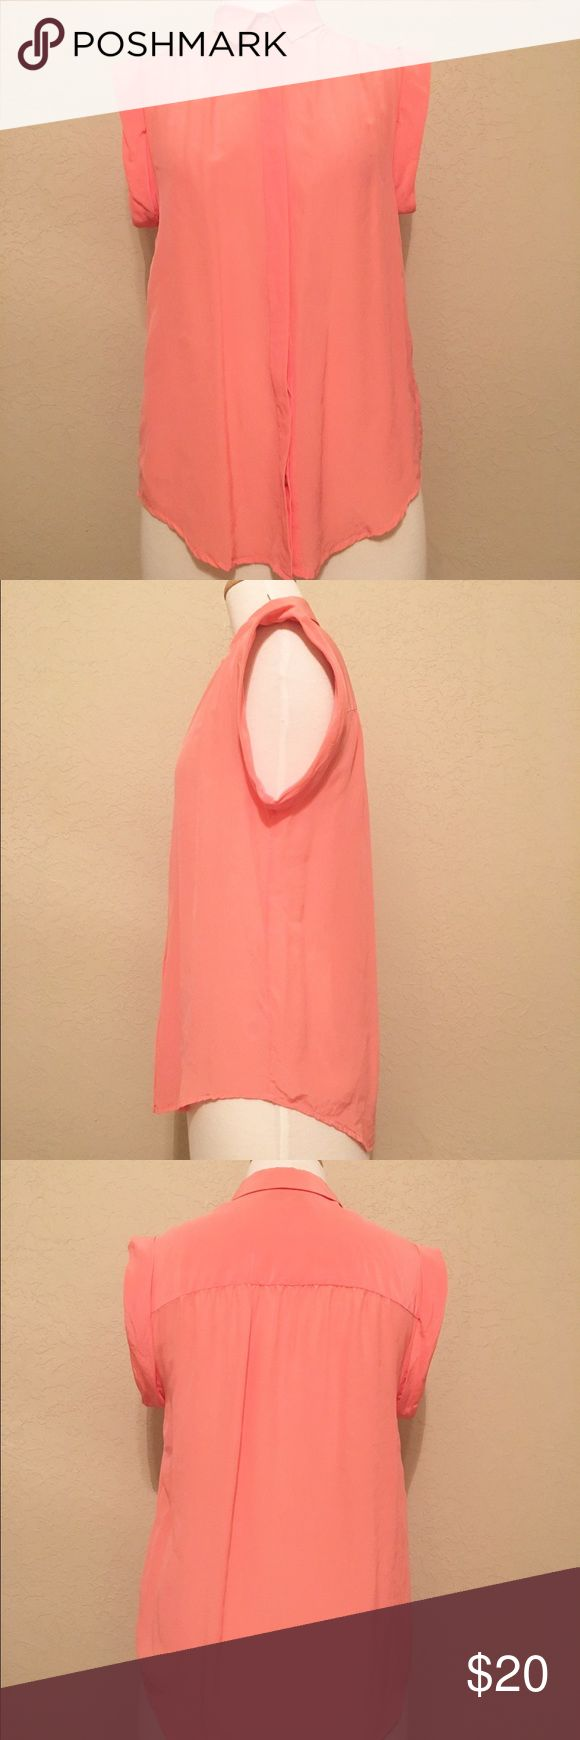 Madewell Small Coral Sheer Silk Blouse Beautiful spring blouse! Super cute with white cropped pants! Madewell Tops Blouses